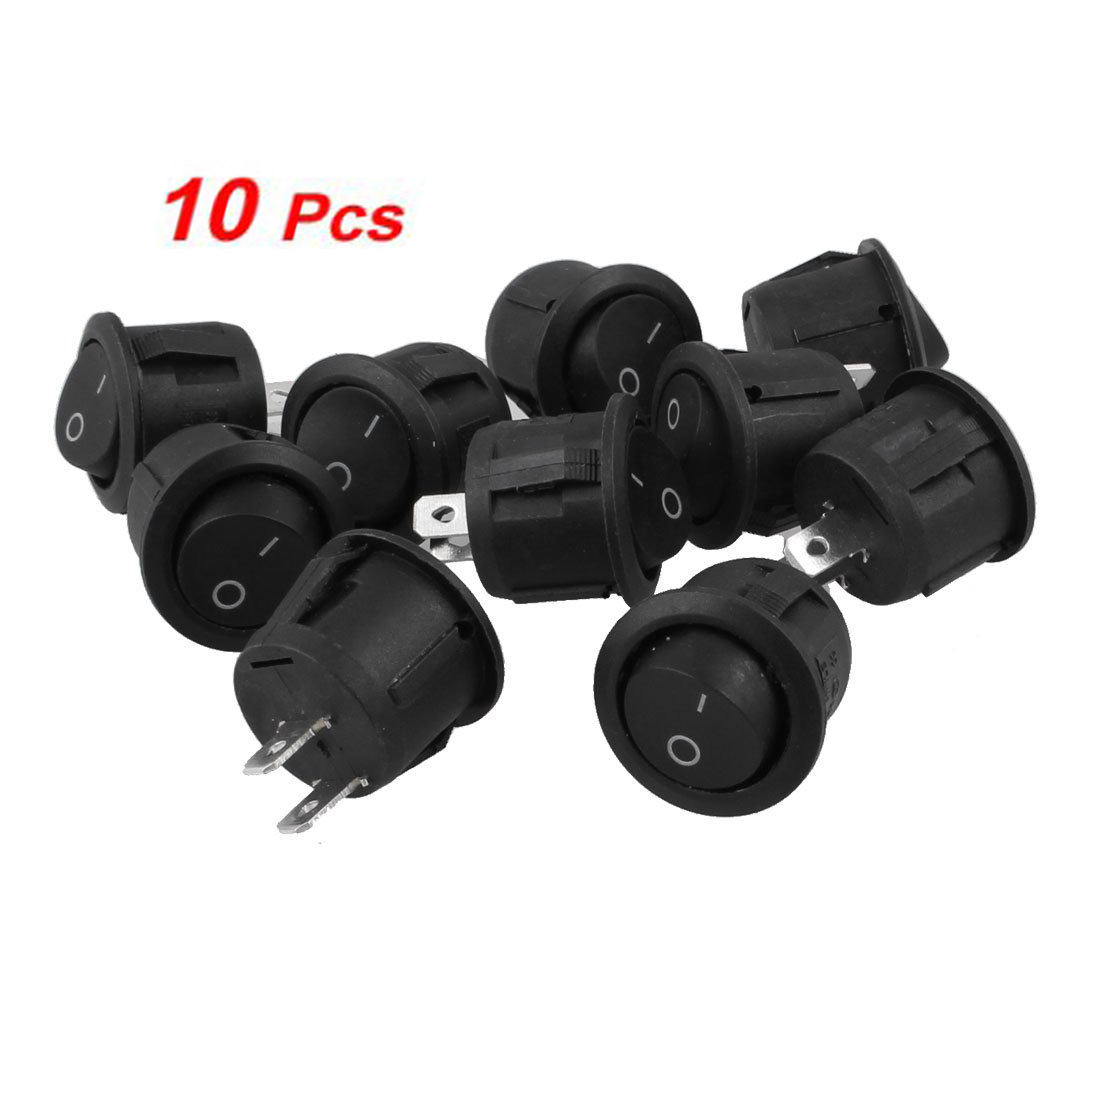 Promotion! 10Pcs AC 6A 10A 250V On Off Snap in SPST Round Boat Rocker Switch Black high quality 10 pcs ac 250v 6a ac 125v 10a 2 pin on off spst snap in boat rocker switch